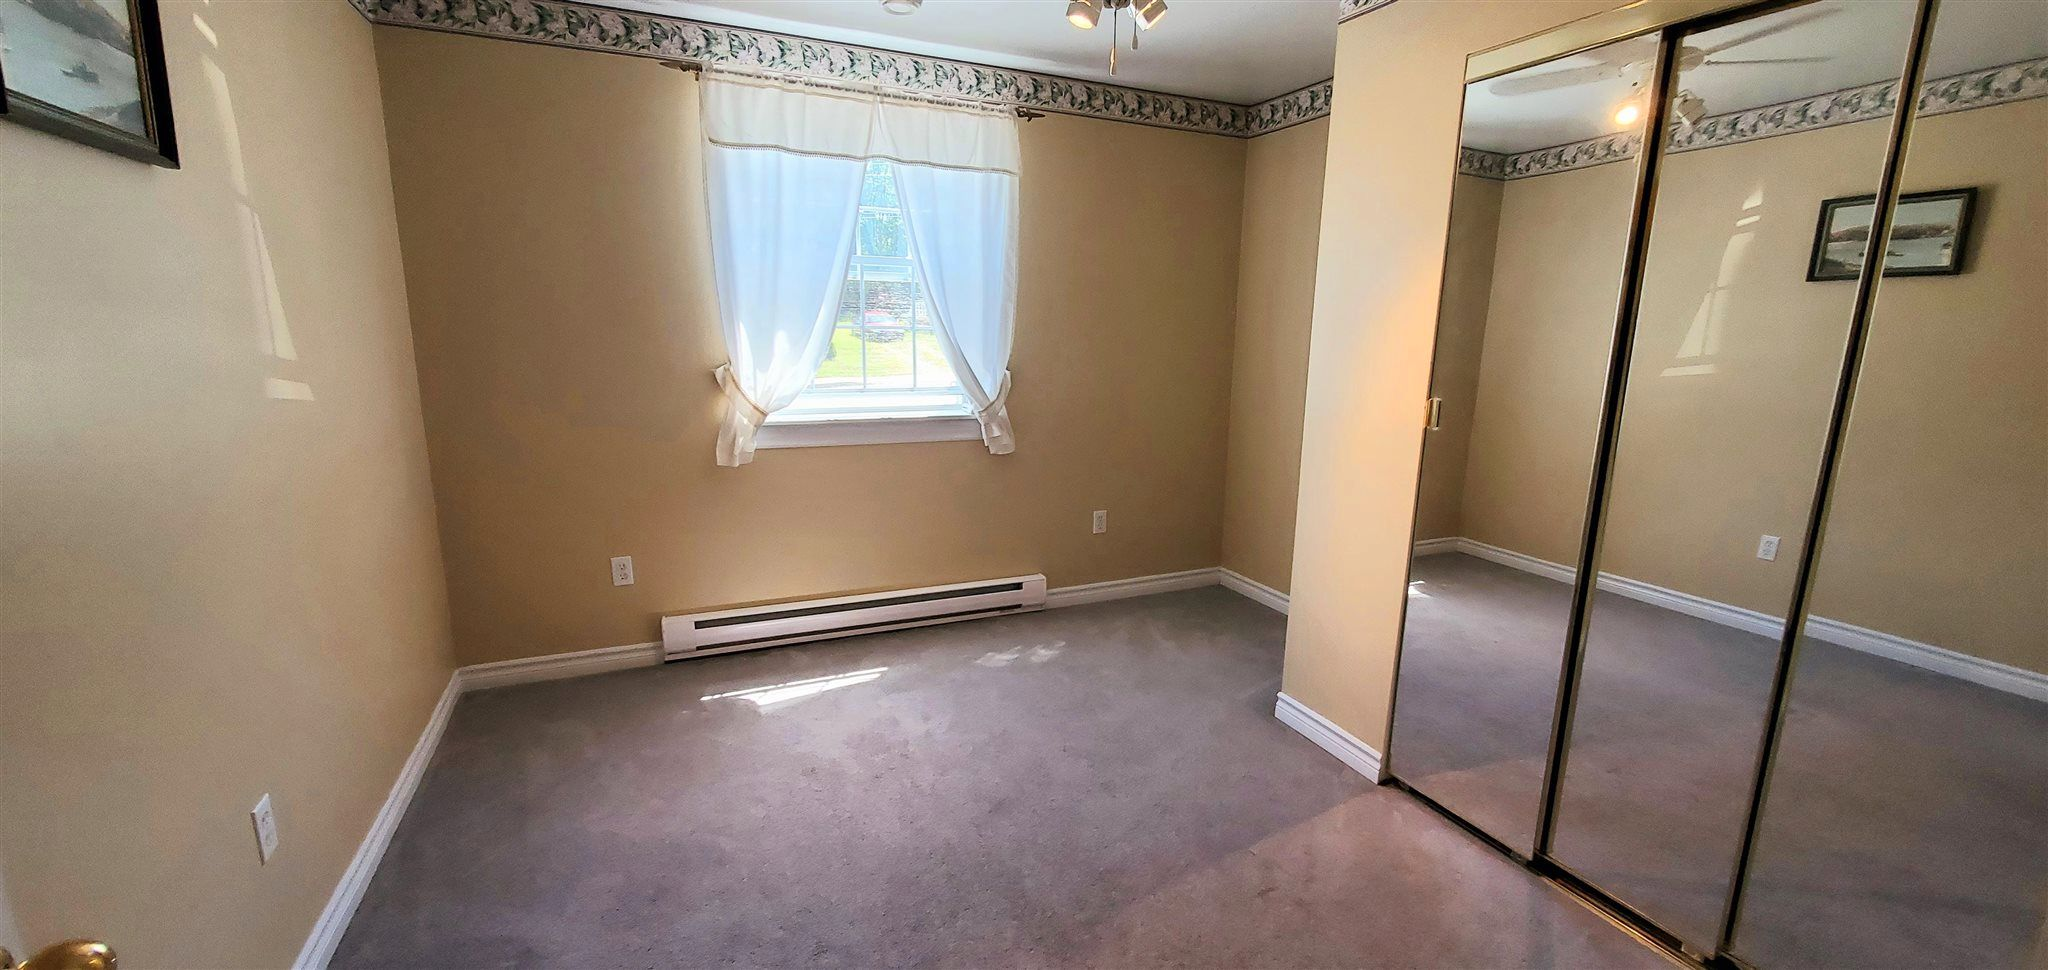 Photo 16: Photos: 1130 McKittrick Road in North Kentville: 404-Kings County Residential for sale (Annapolis Valley)  : MLS®# 202110448